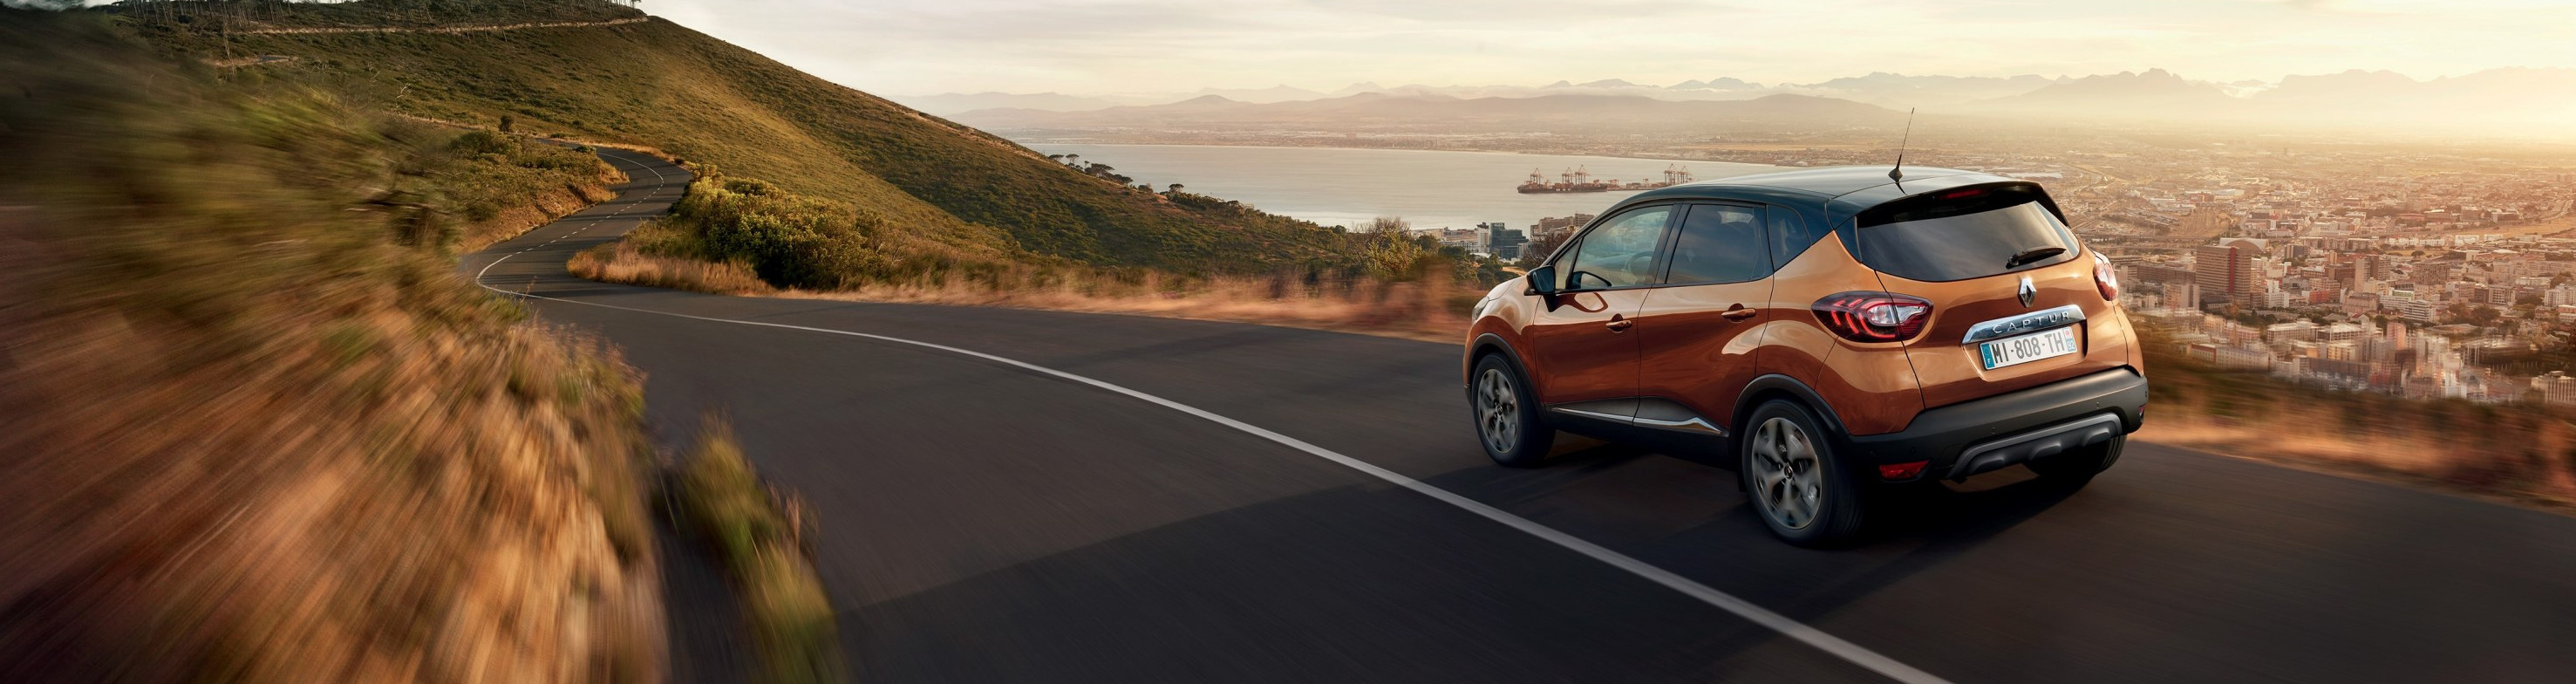 87968_2017_-_new_renault_captur.jpg